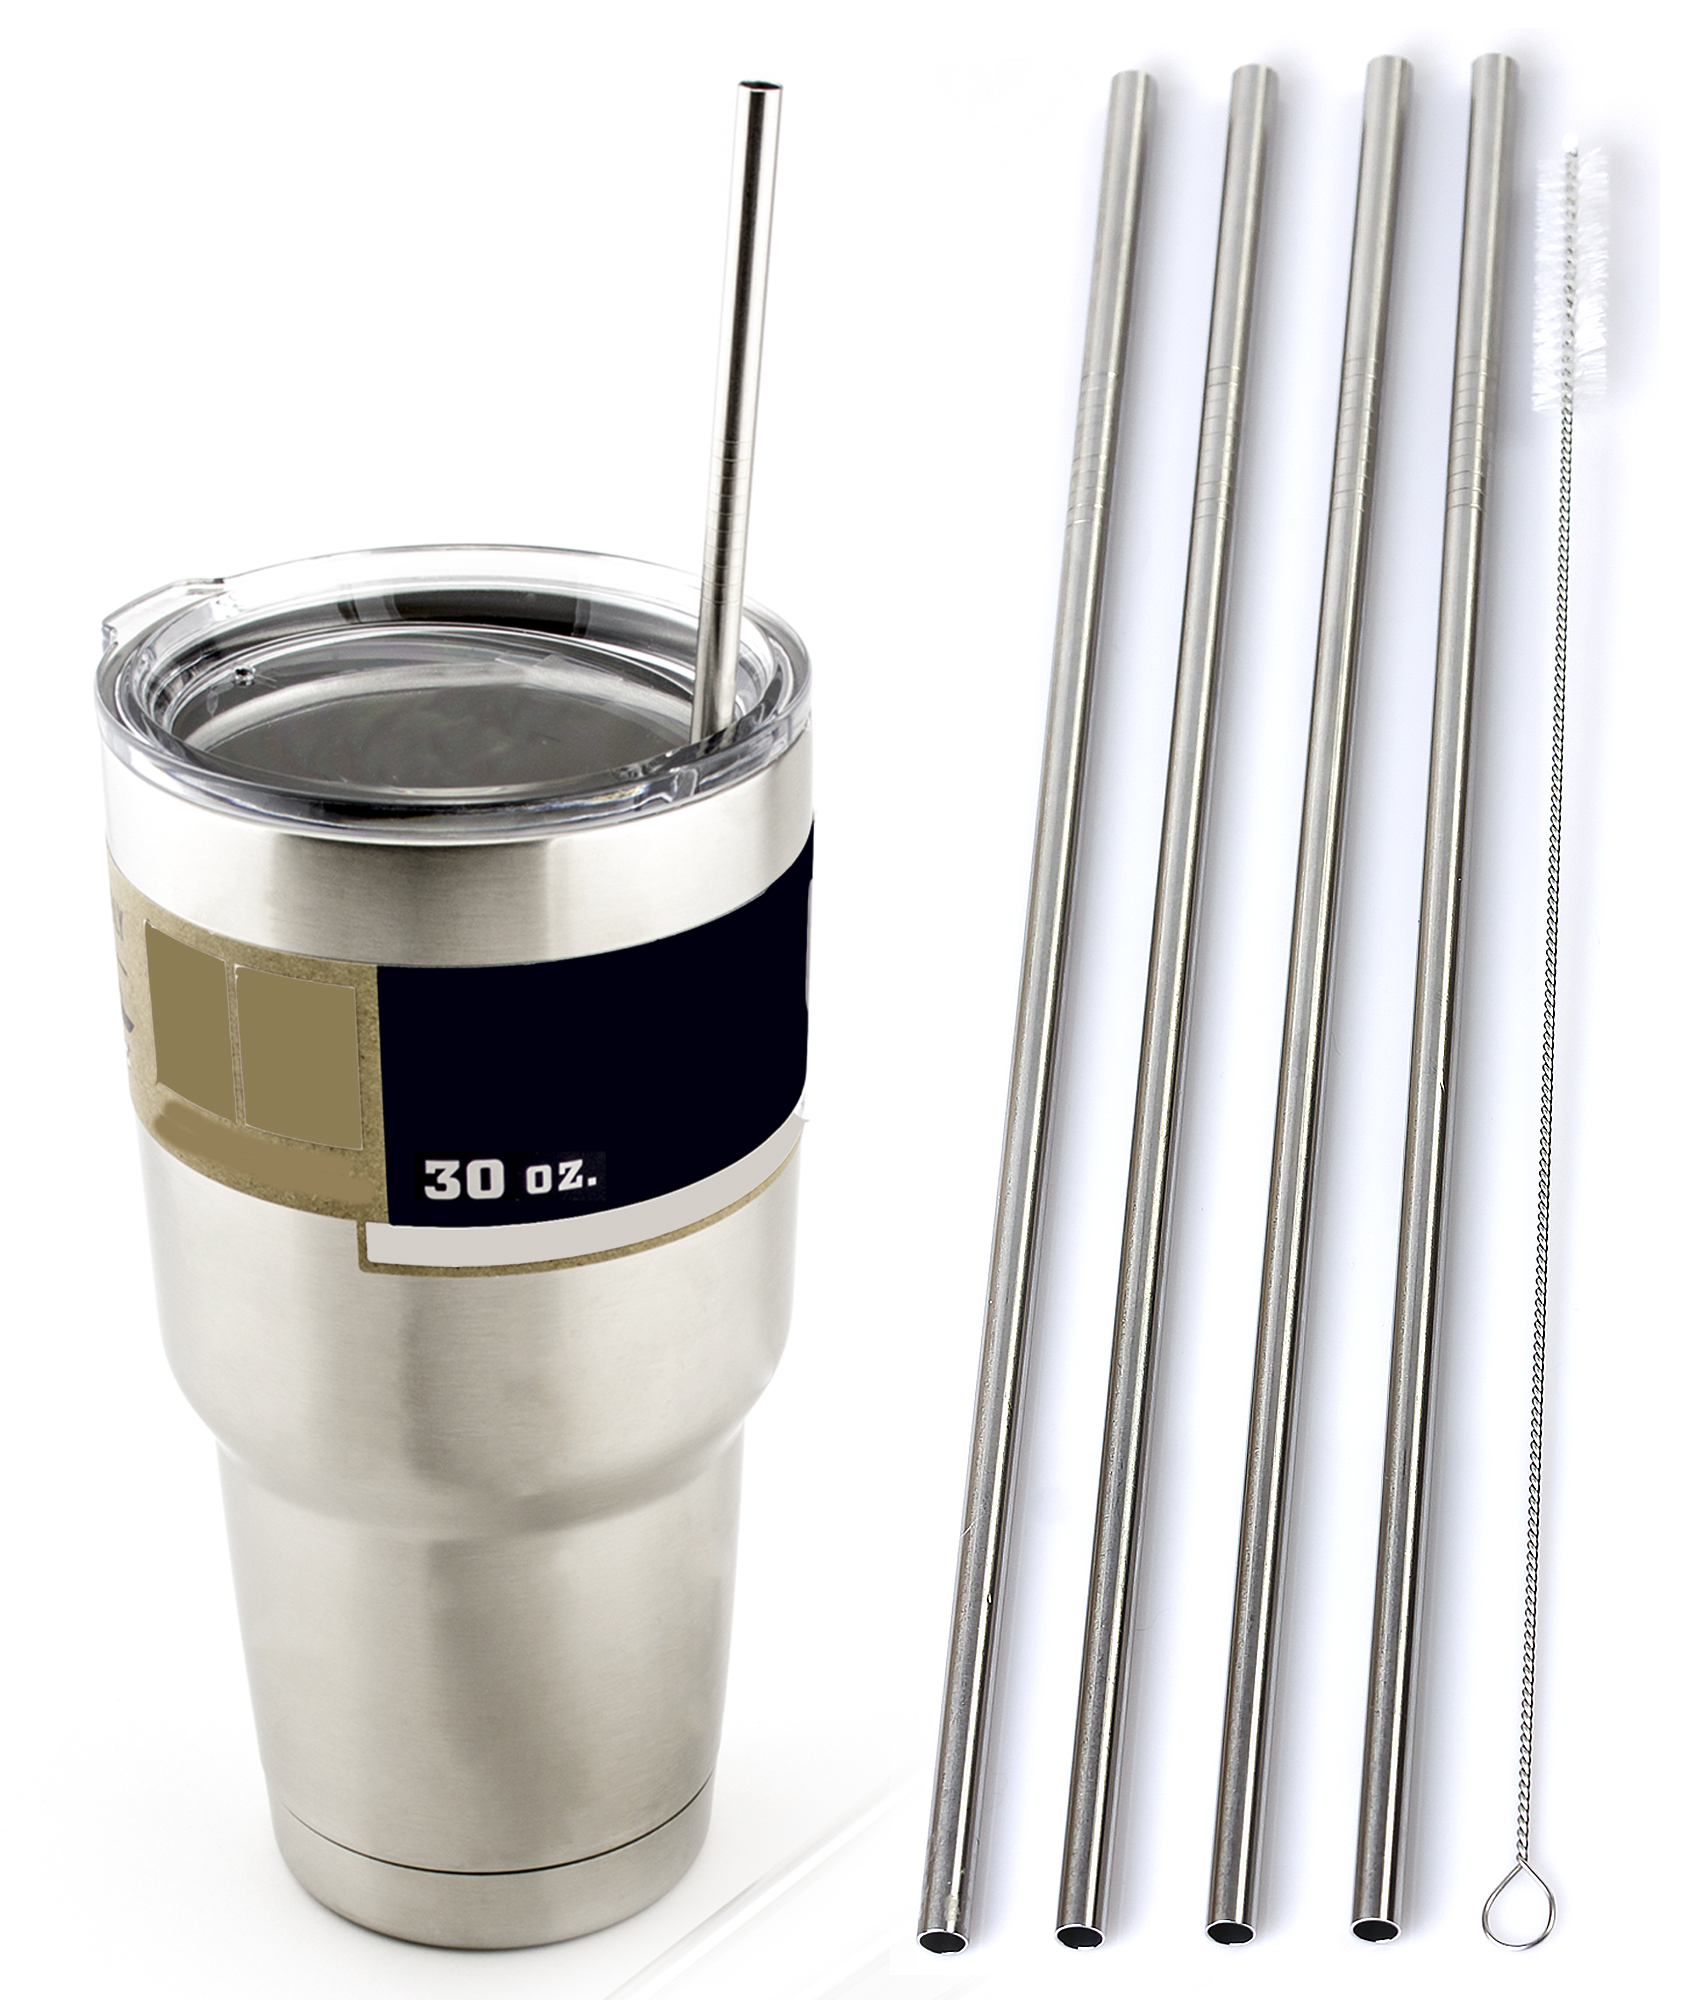 """4 LONG 10.5"""" Stainless Steel Straws fits 30 oz Yeti Tumbler Rambler Cups CocoStraw Brand Drinking Straw... by CocoStraw"""